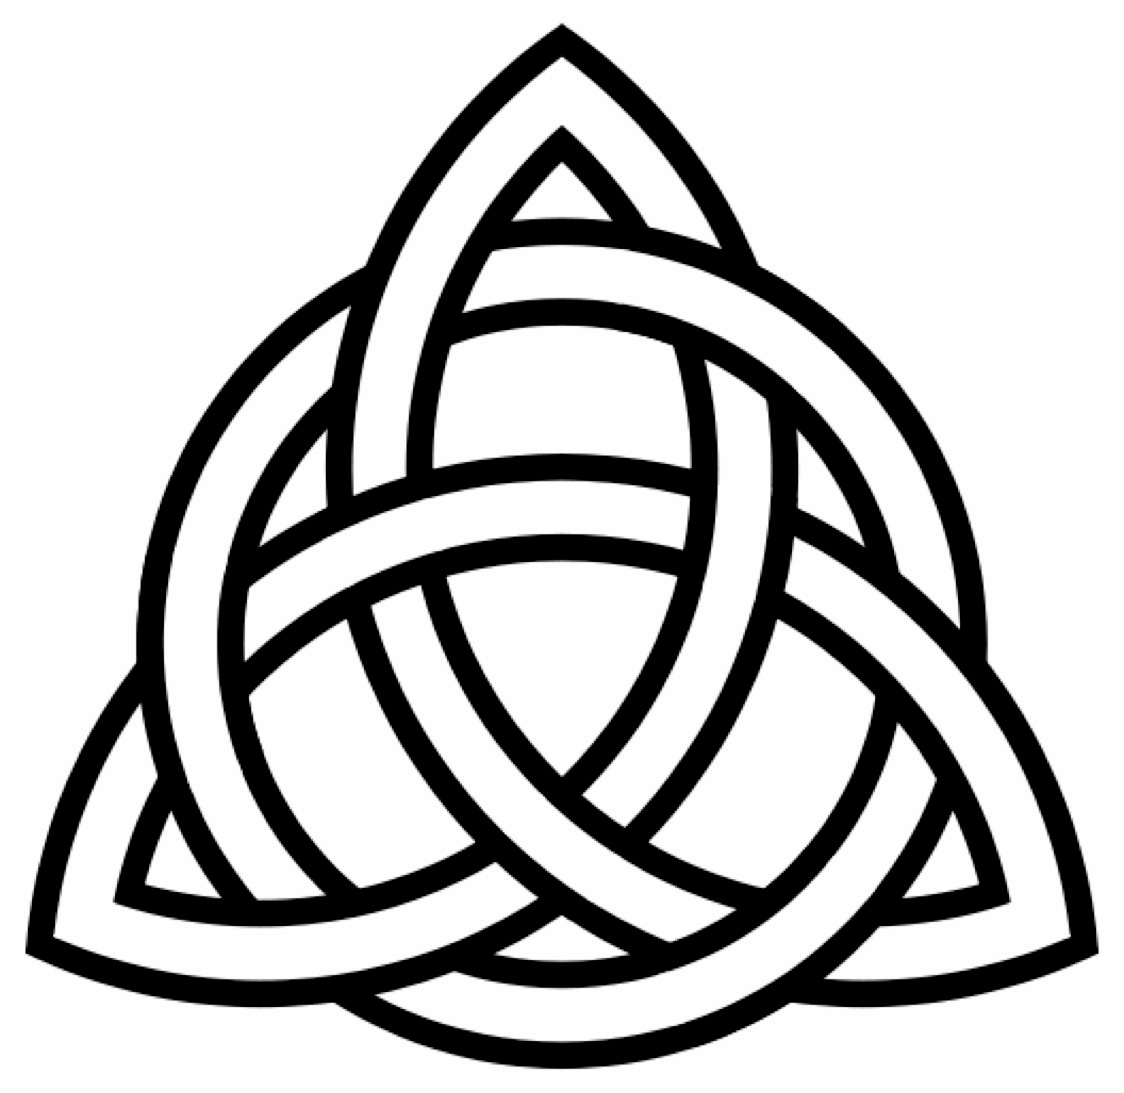 54 celtic knot tattoo designs and ideas celtic knot tattoo design buycottarizona Gallery